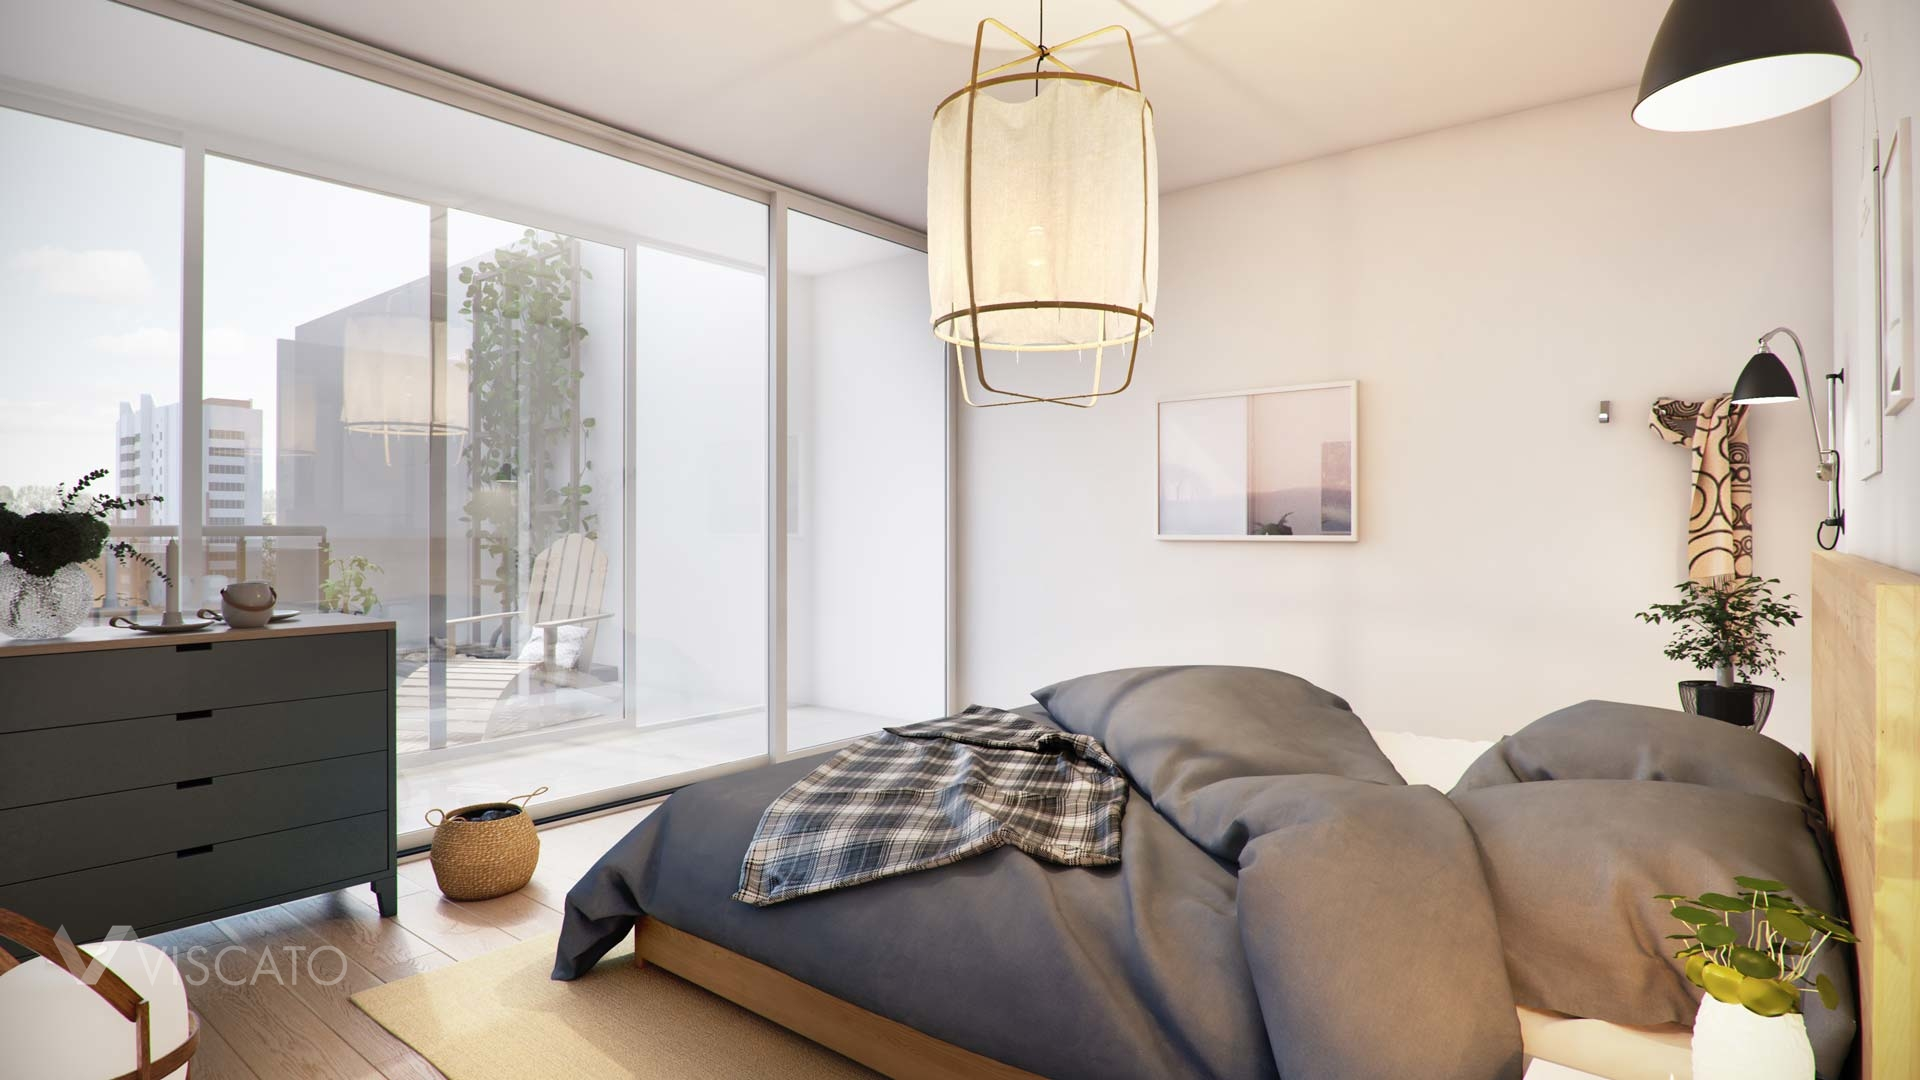 3d visualisation of a bedroom with big windows